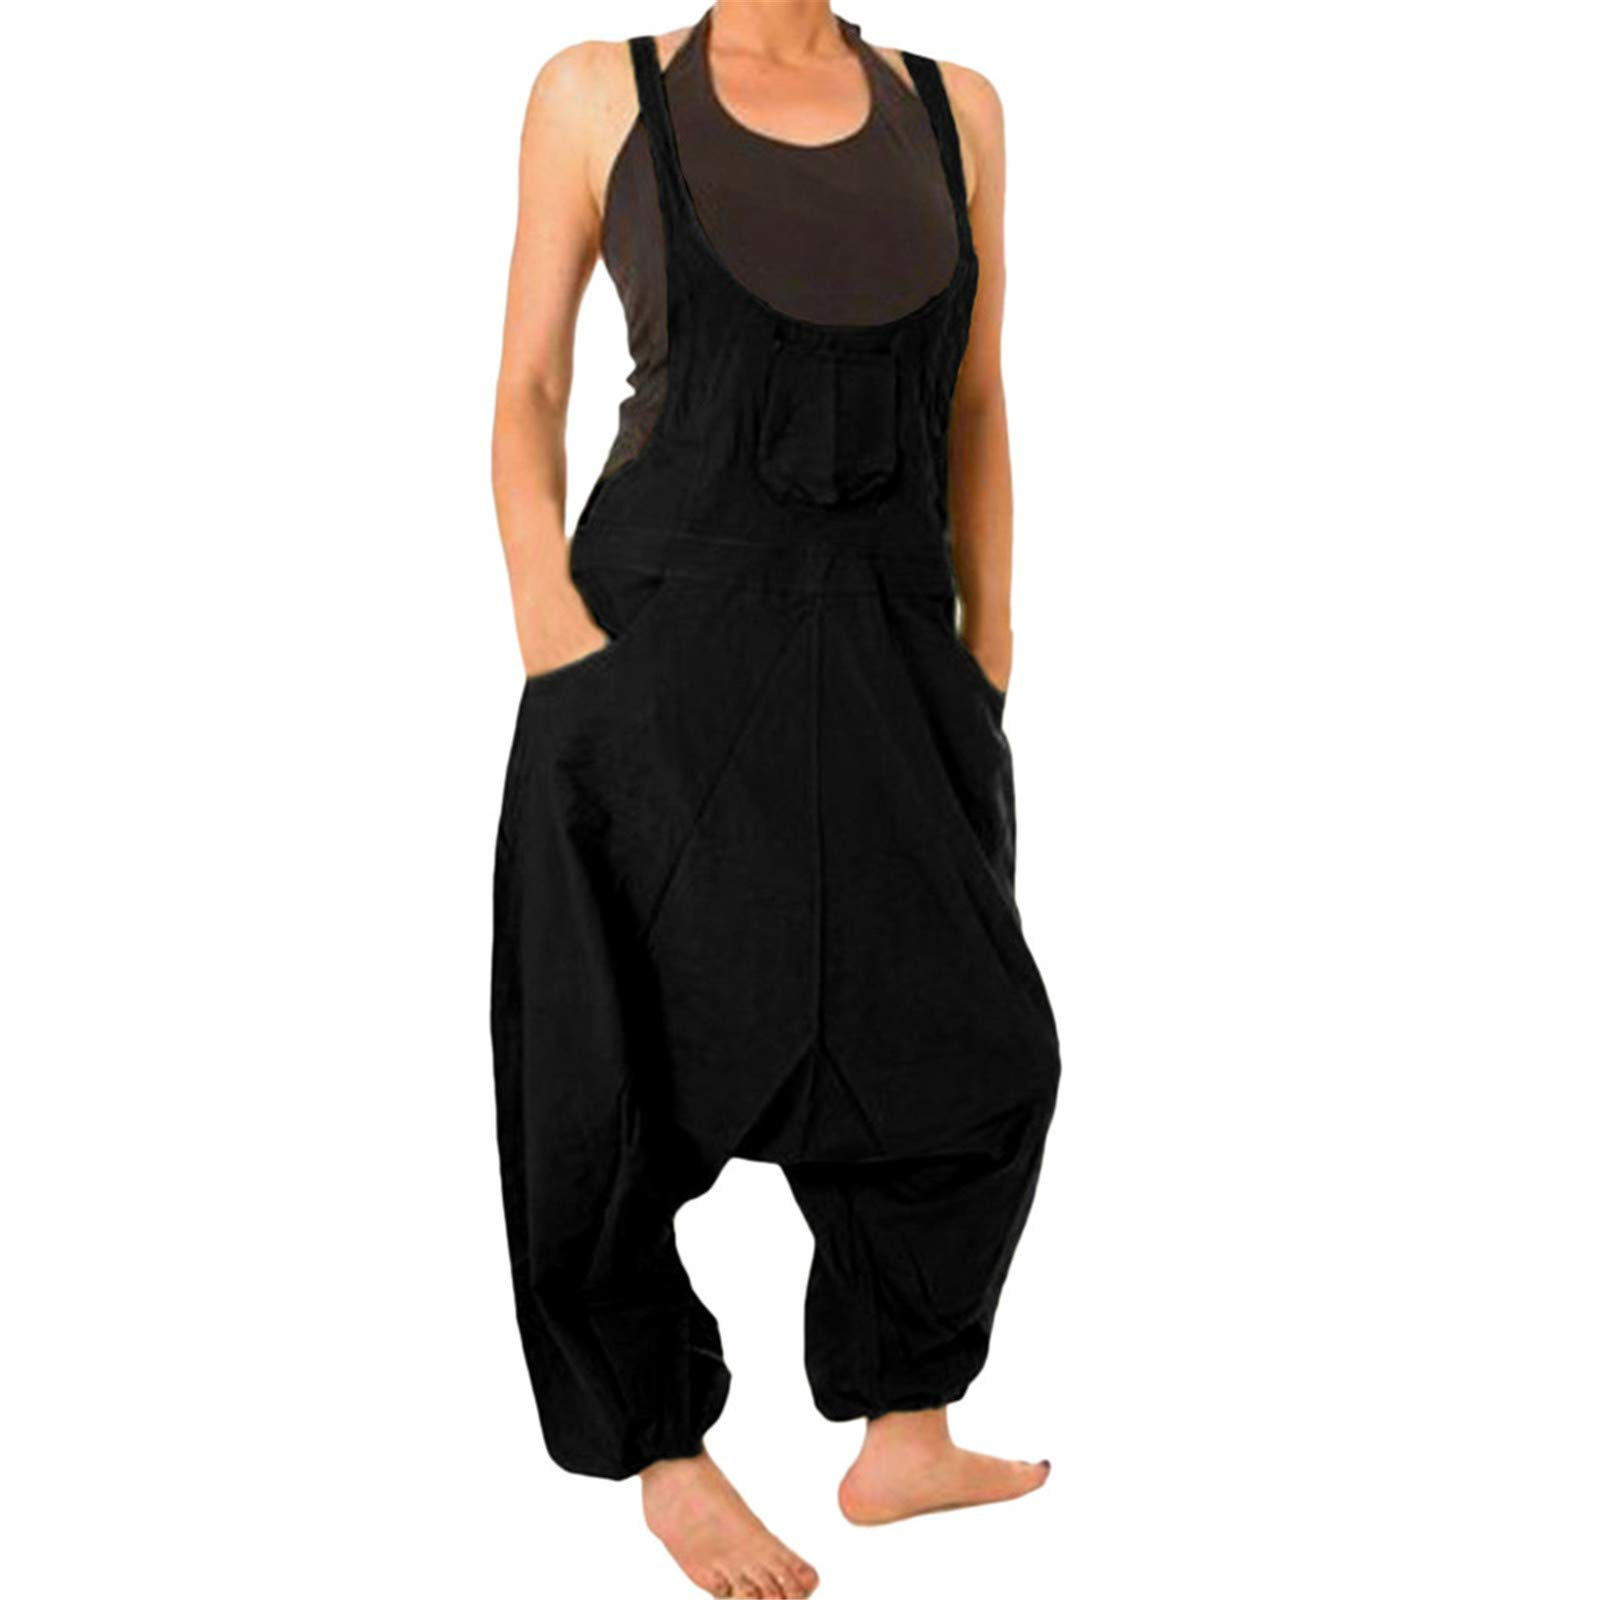 Thenxin Women's Bib Overalls Plus Size Hippie Beam Foot Jumpsuit Baggy Dungarees Rompers(Black,XL) by Thenxin